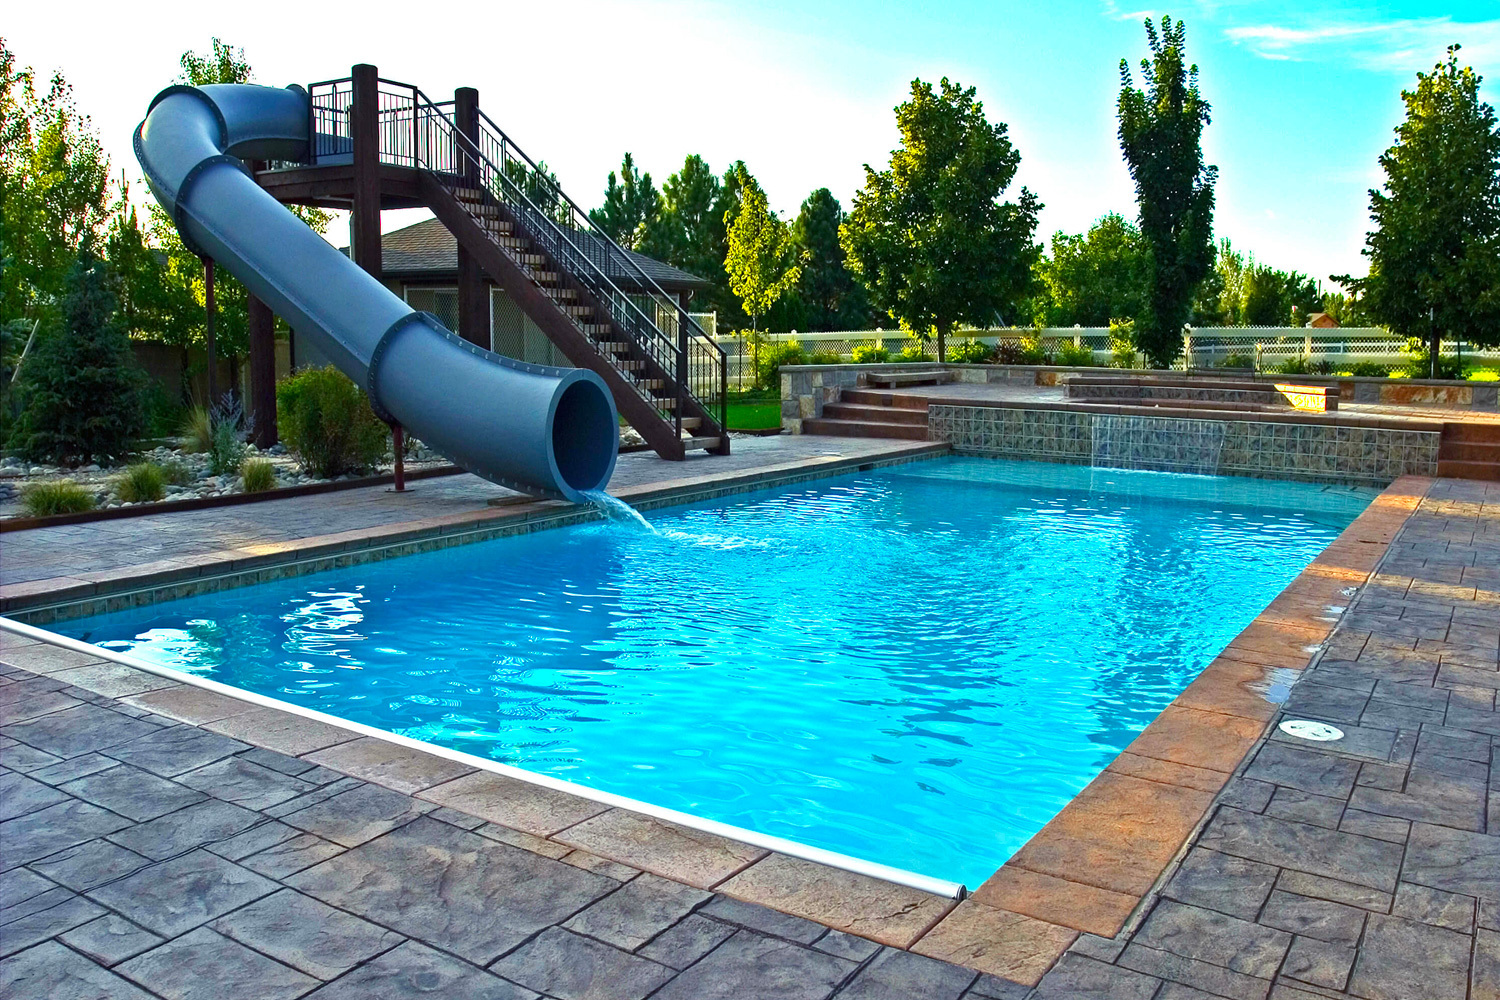 How to Plan for Your Spring Time Pool Installation - Aquatech Utah